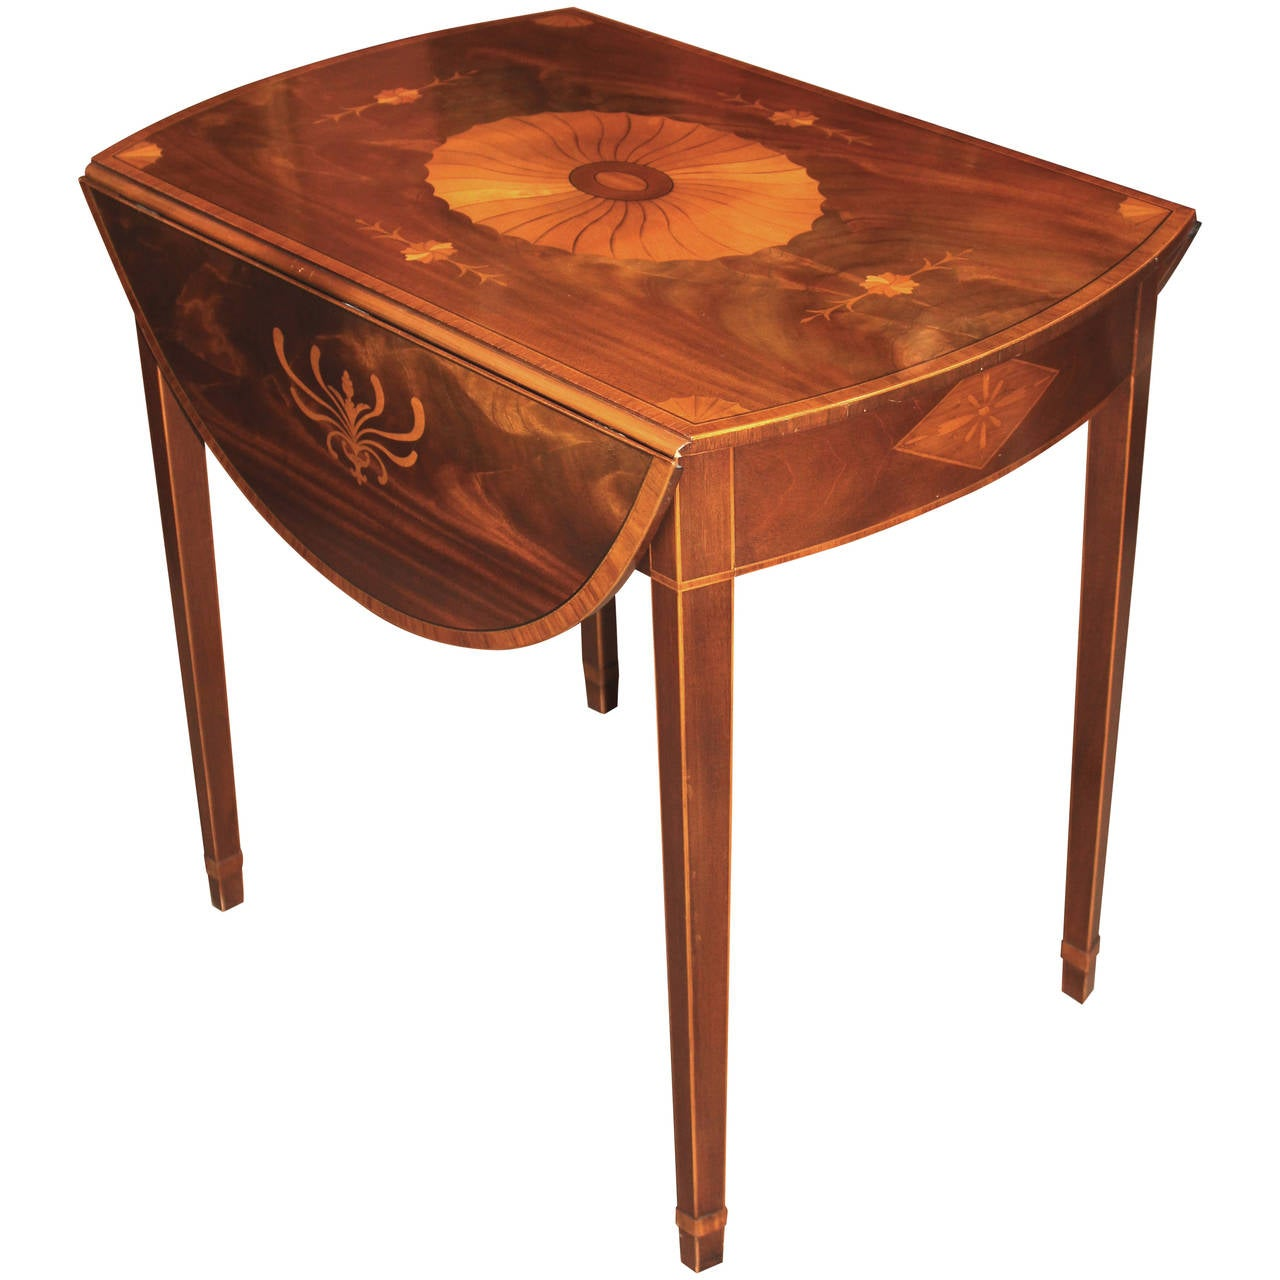 Baker Furniture Inlaid Pembroke Table at 1stdibs